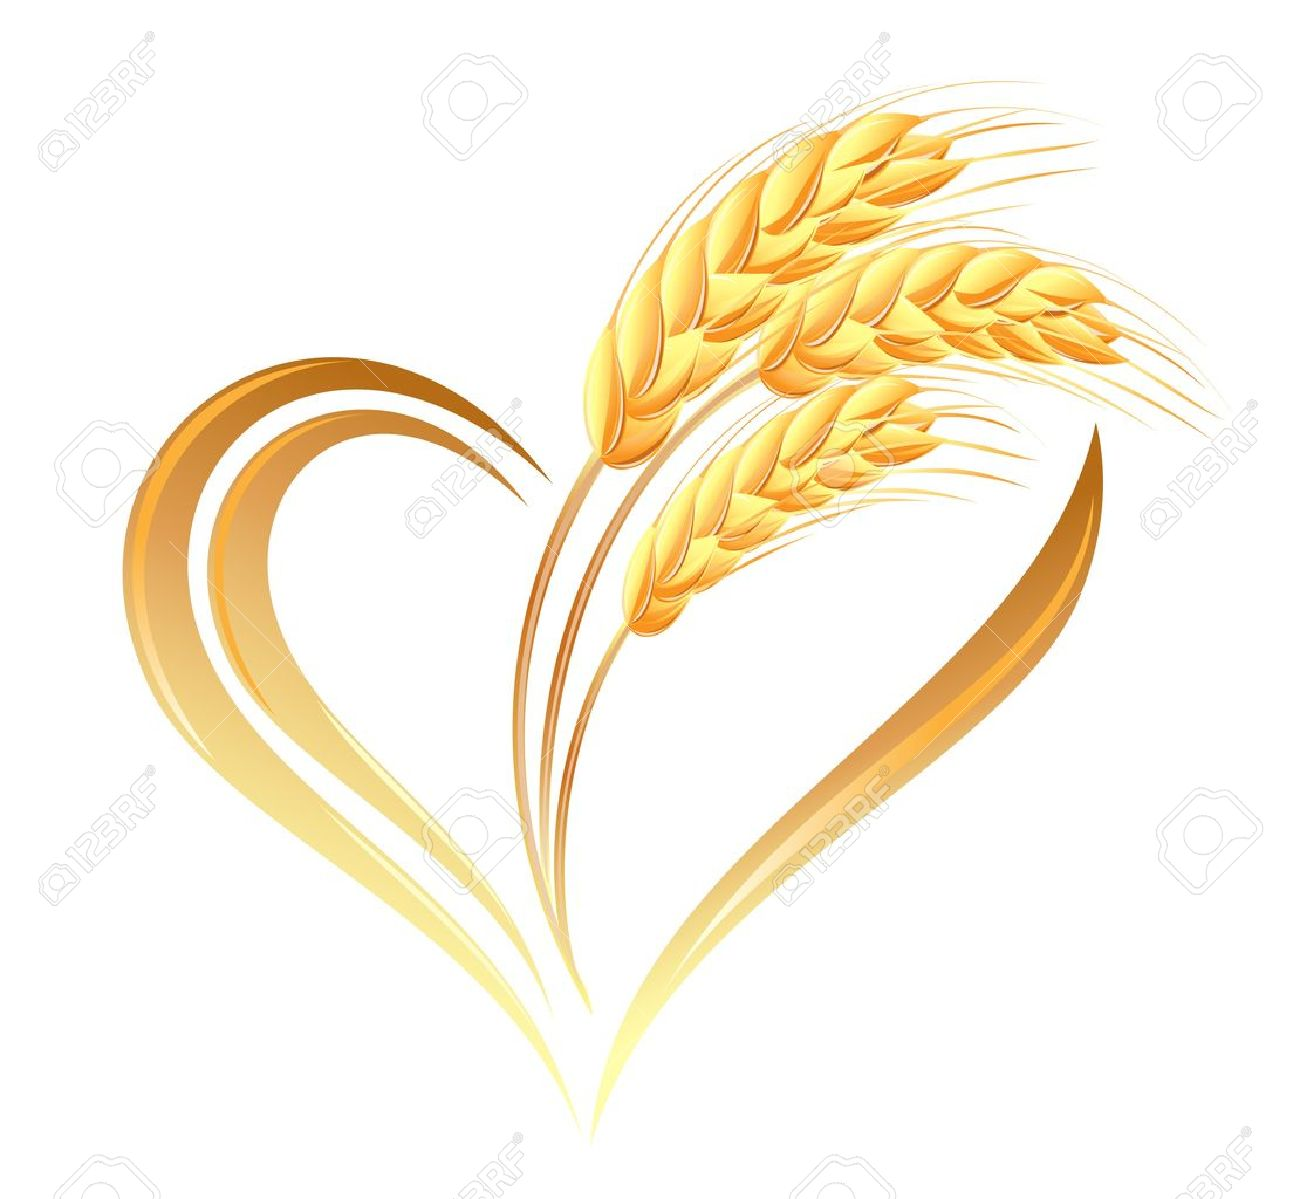 Abstract wheat ears icon with heart element - 15251903